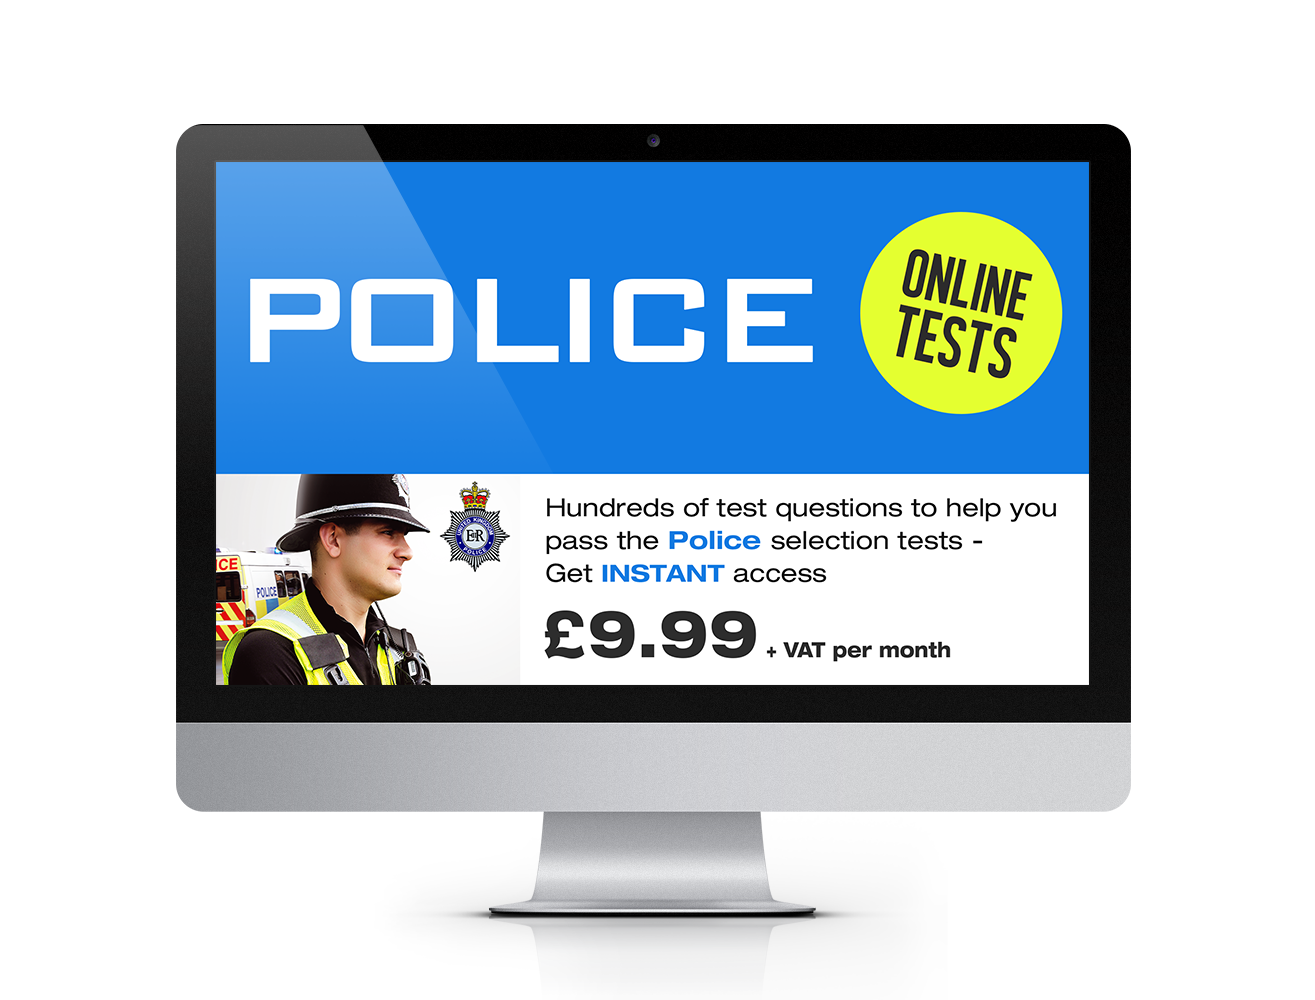 online police tests 100s of test questions how2become online police tests